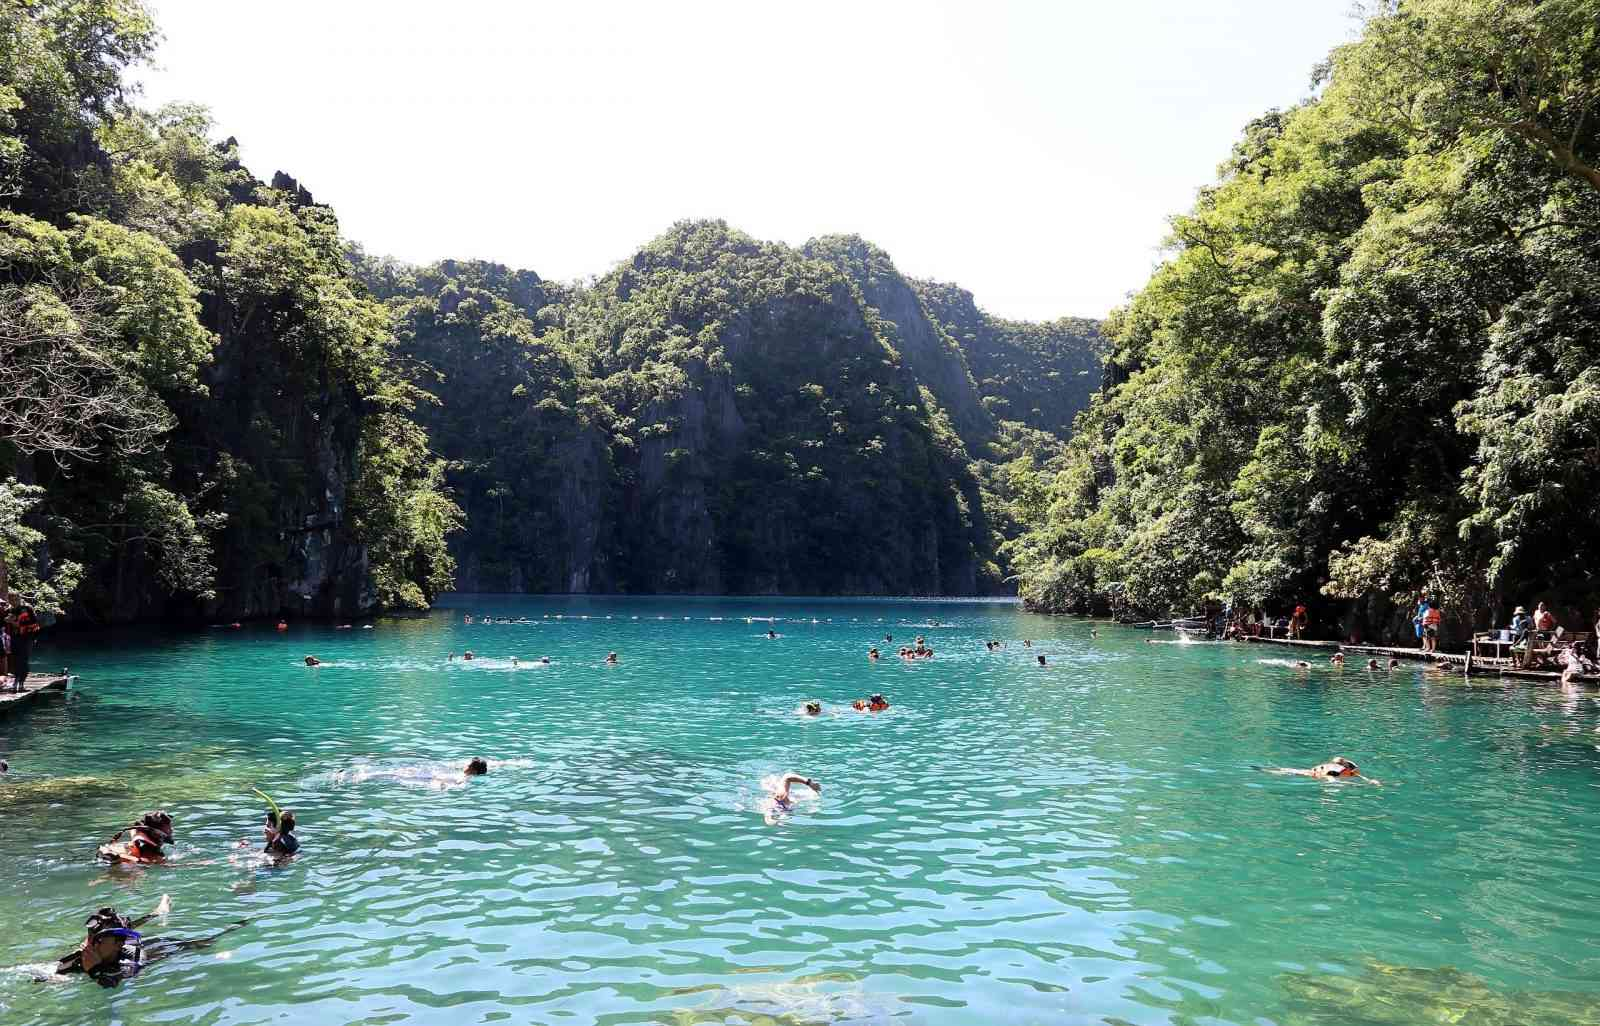 An image of Coron Palawan, the most beautiful island in the world